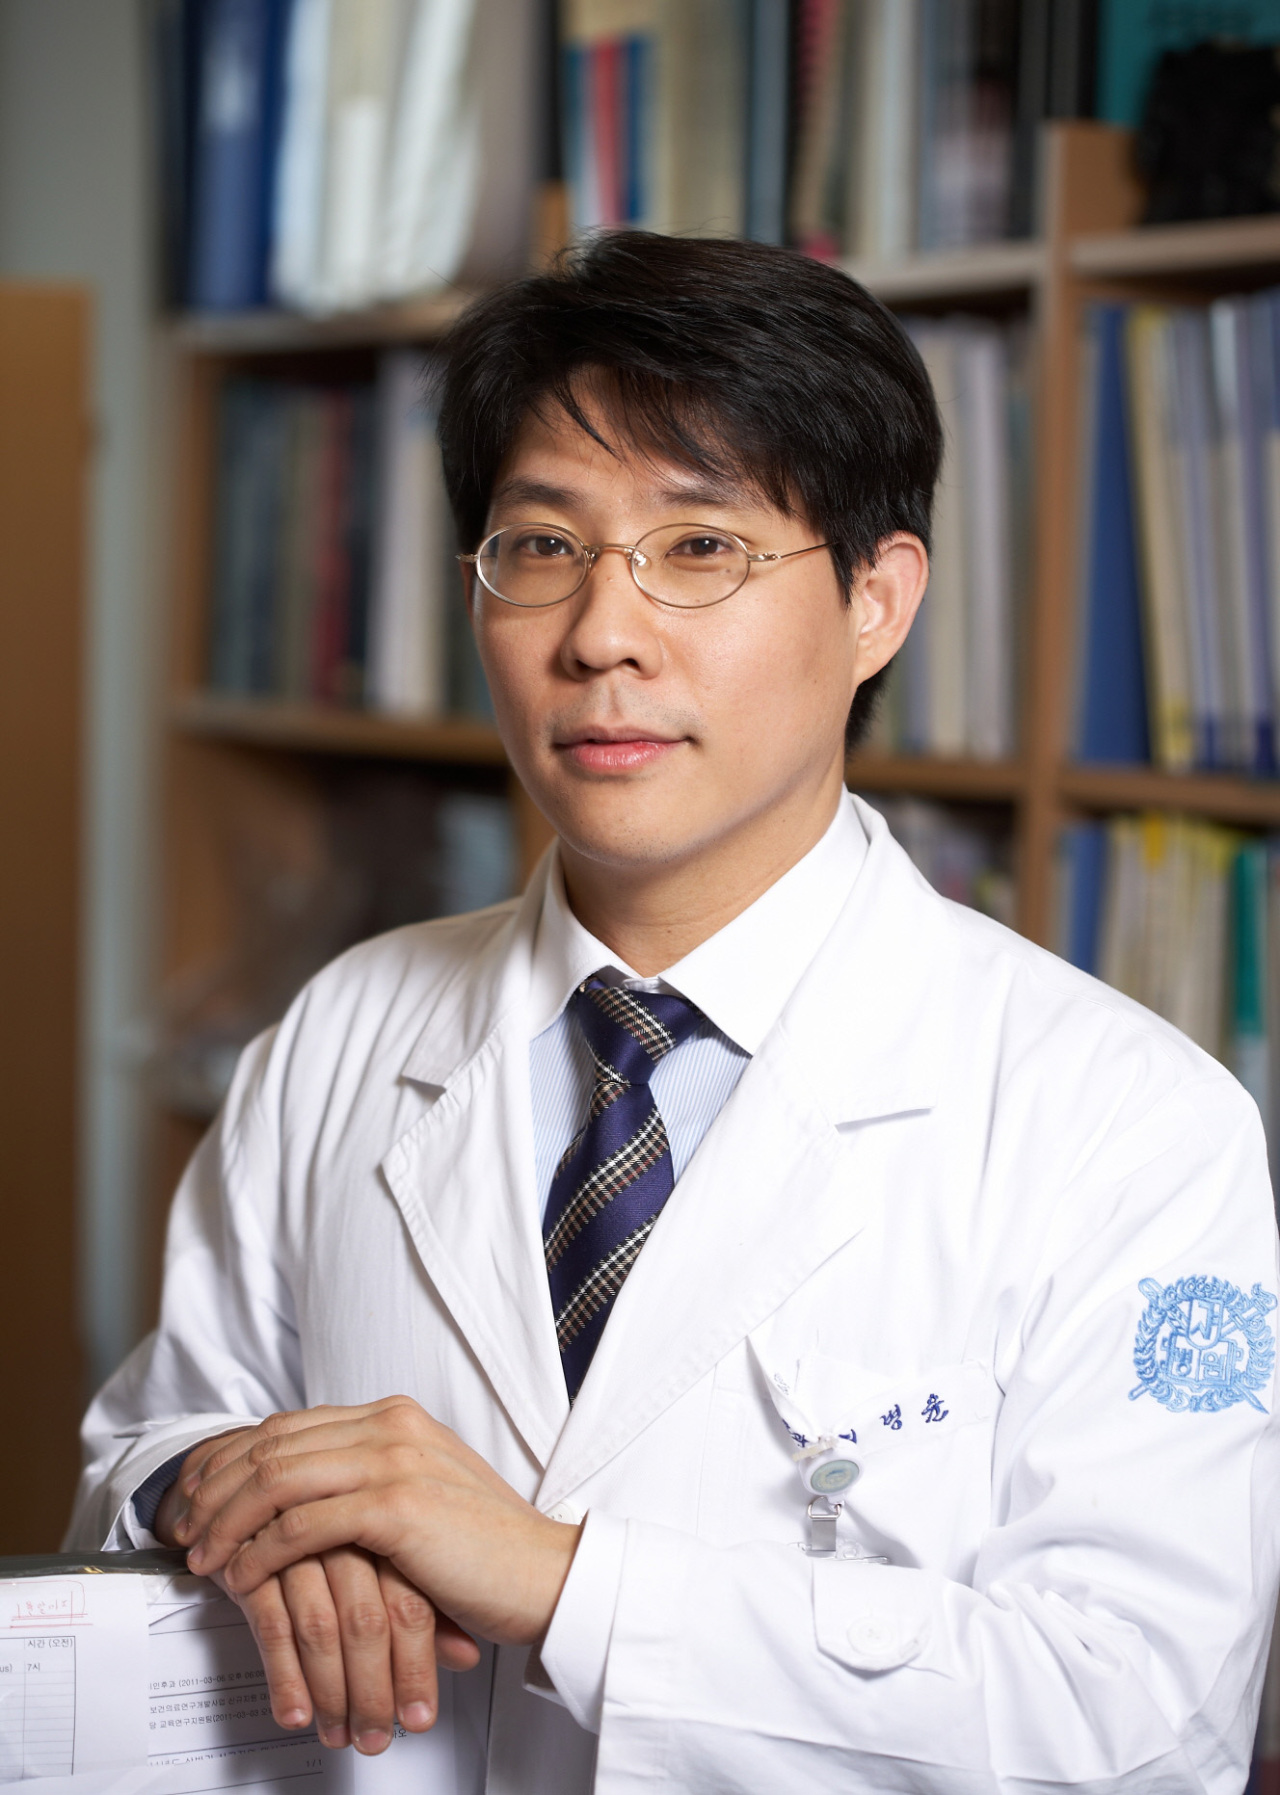 Ear, nose and throat specialist Dr. Choi Byung-yoon is the principal investigator at the laboratory of clinical genetics at Seoul National University Bundang Hospital. (Seoul National University BundangHospital)